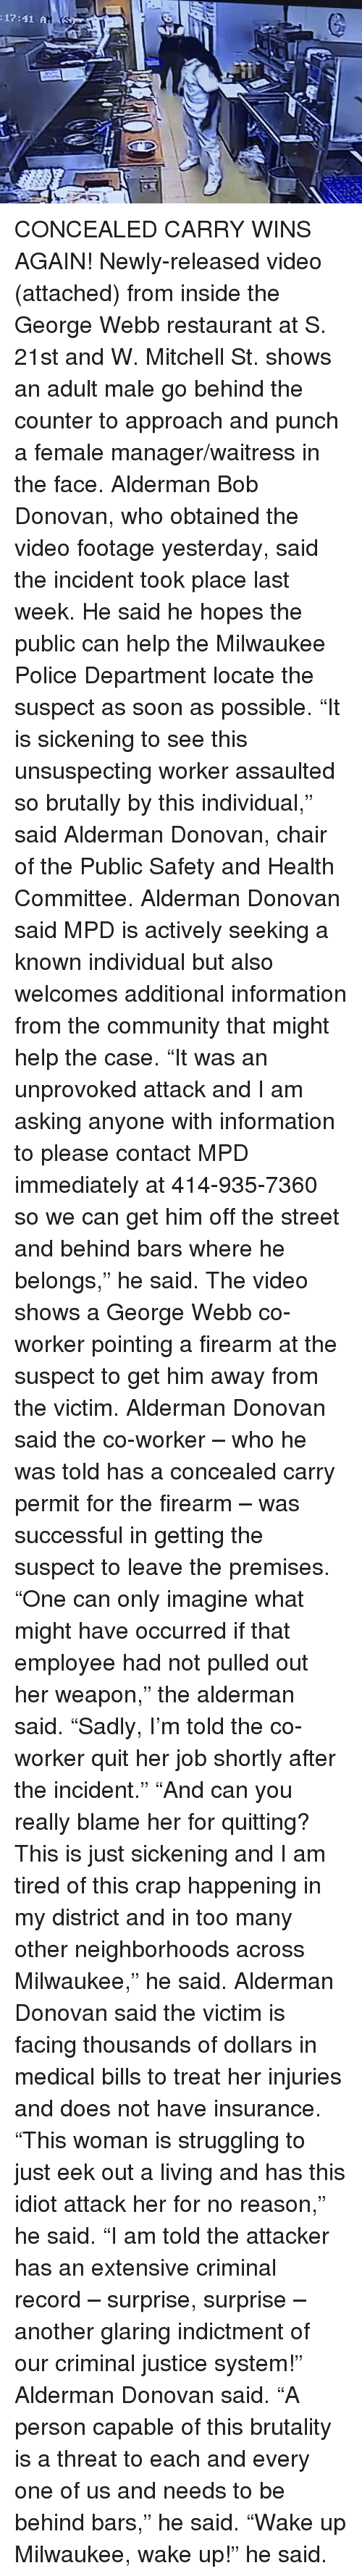 "donovan: :17:41 A CONCEALED CARRY WINS AGAIN!  Newly-released video (attached) from inside the George Webb restaurant at S. 21st and W. Mitchell St. shows an adult male go behind the counter to approach and punch a female manager/waitress in the face.  Alderman Bob Donovan, who obtained the video footage yesterday, said the incident took place last week. He said he hopes the public can help the Milwaukee Police Department locate the suspect as soon as possible.  ""It is sickening to see this unsuspecting worker assaulted so brutally by this individual,"" said Alderman Donovan, chair of the Public Safety and Health Committee.  Alderman Donovan said MPD is actively seeking a known individual but also welcomes additional information from the community that might help the case.  ""It was an unprovoked attack and I am asking anyone with information to please contact MPD immediately at 414-935-7360 so we can get him off the street and behind bars where he belongs,"" he said.  The video shows a George Webb co-worker pointing a firearm at the suspect to get him away from the victim. Alderman Donovan said the co-worker – who he was told has a concealed carry permit for the firearm – was successful in getting the suspect to leave the premises.  ""One can only imagine what might have occurred if that employee had not pulled out her weapon,"" the alderman said. ""Sadly, I'm told the co-worker quit her job shortly after the incident.""  ""And can you really blame her for quitting? This is just sickening and I am tired of this crap happening in my district and in too many other neighborhoods across Milwaukee,"" he said.  Alderman Donovan said the victim is facing thousands of dollars in medical bills to treat her injuries and does not have insurance. ""This woman is struggling to just eek out a living and has this idiot attack her for no reason,"" he said.  ""I am told the attacker has an extensive criminal record – surprise, surprise – another glaring indictment of our criminal justice system!"" Alderman Donovan said.  ""A person capable of this brutality is a threat to each and every one of us and needs to be behind bars,"" he said.  ""Wake up Milwaukee, wake up!"" he said."